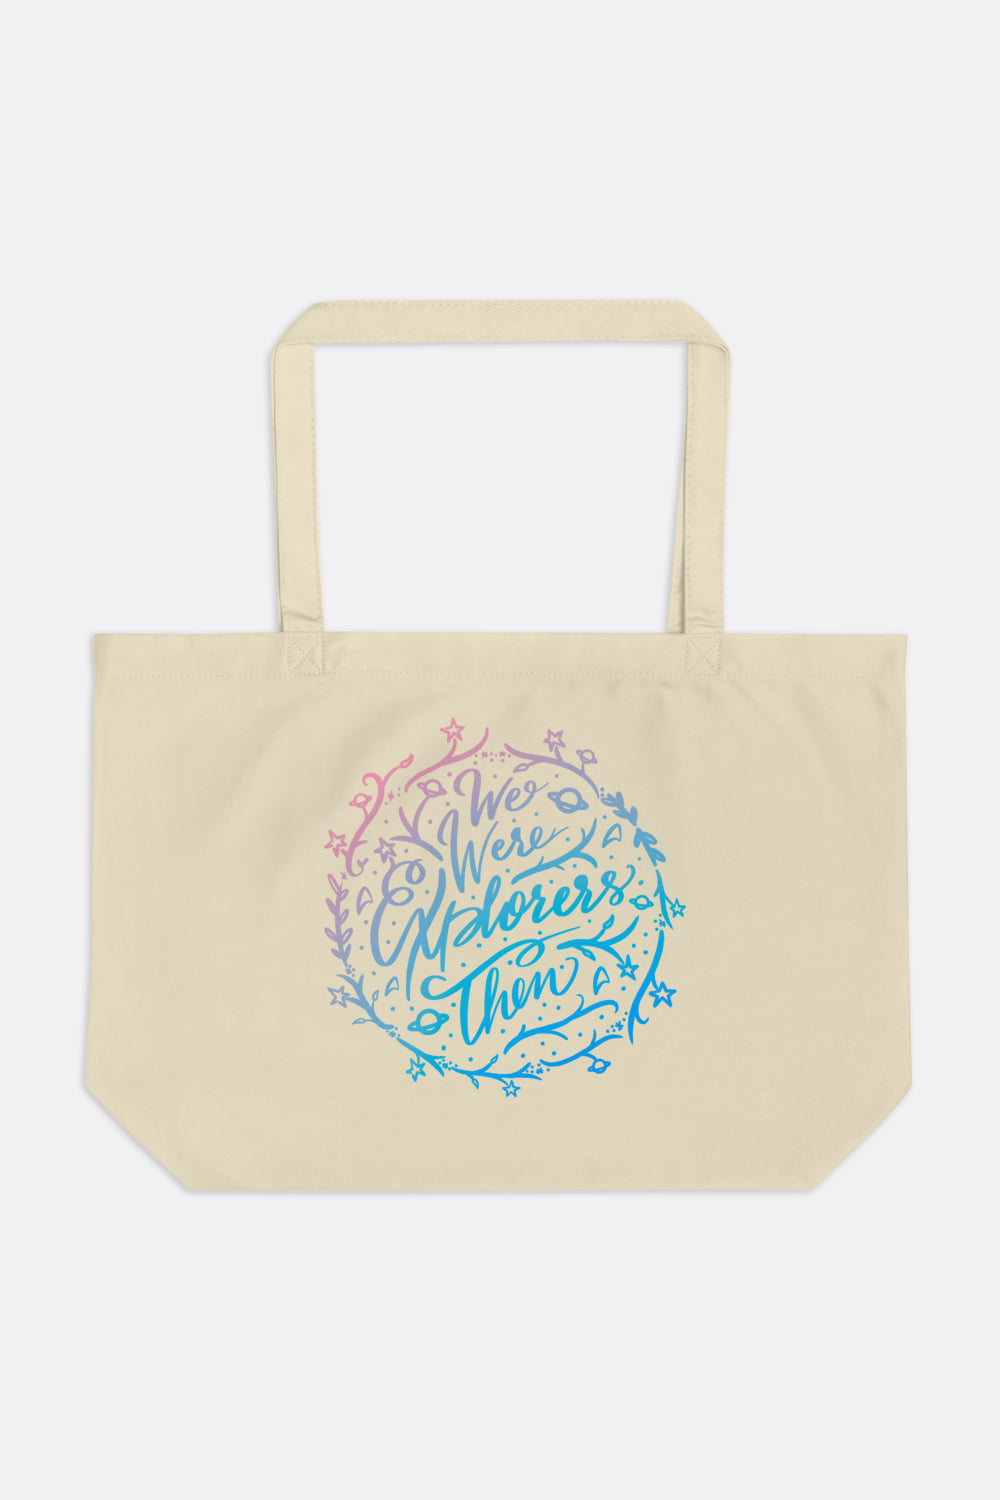 We Were Explorers Then Large Eco Tote